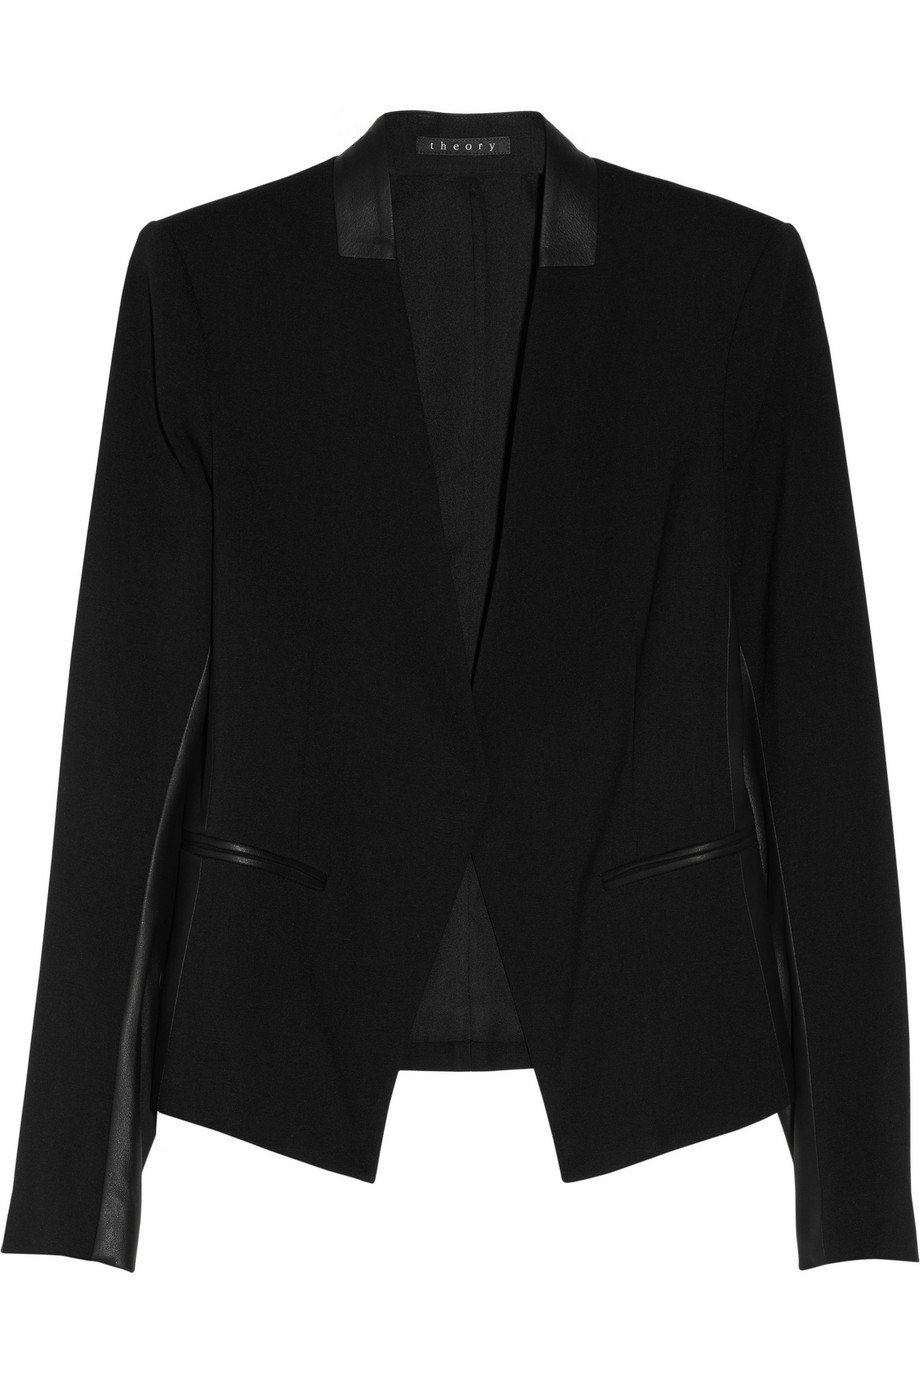 31890557c64 Lyst - Theory Lanai Leather trimmed Stretch ponte Blazer in Black